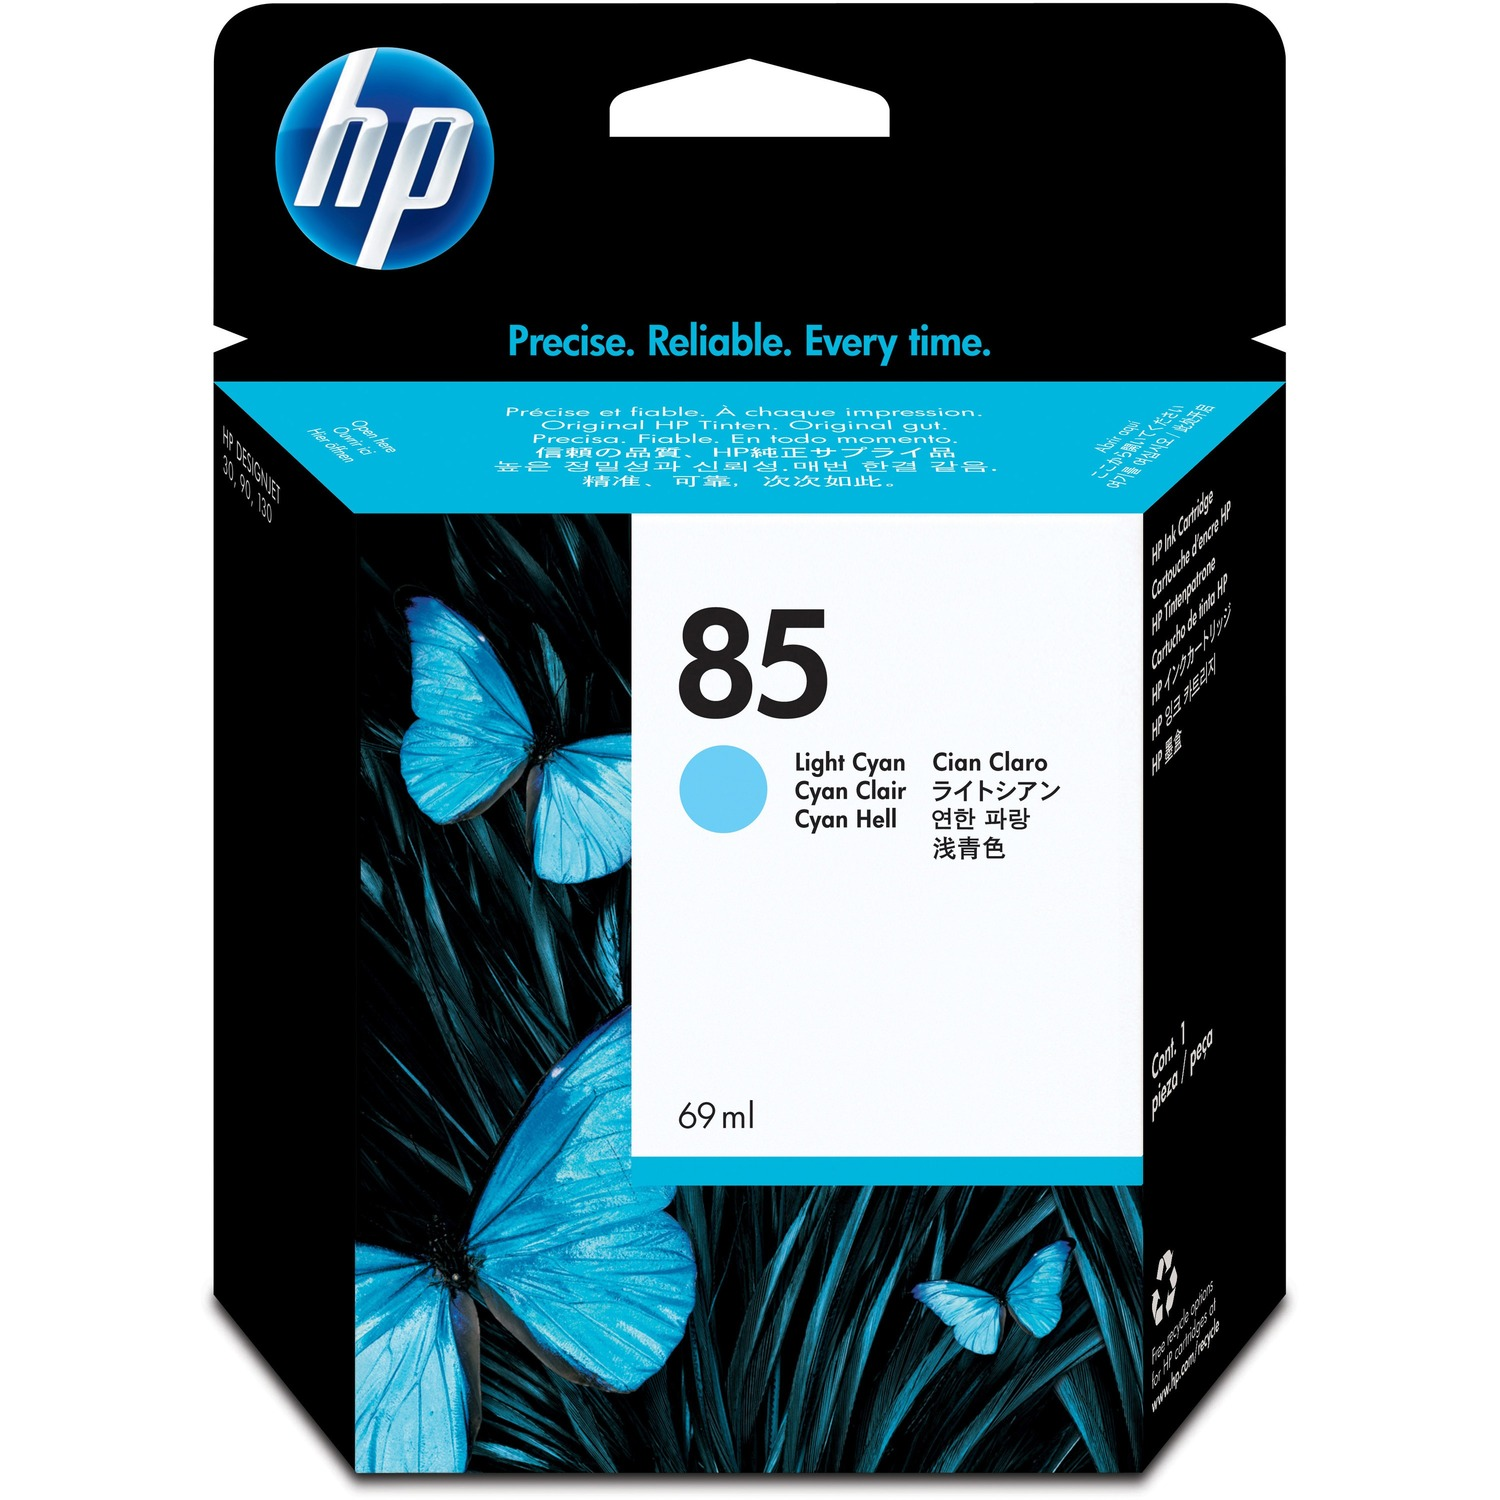 HP No. 85 Ink Cartridge - Light Cyan